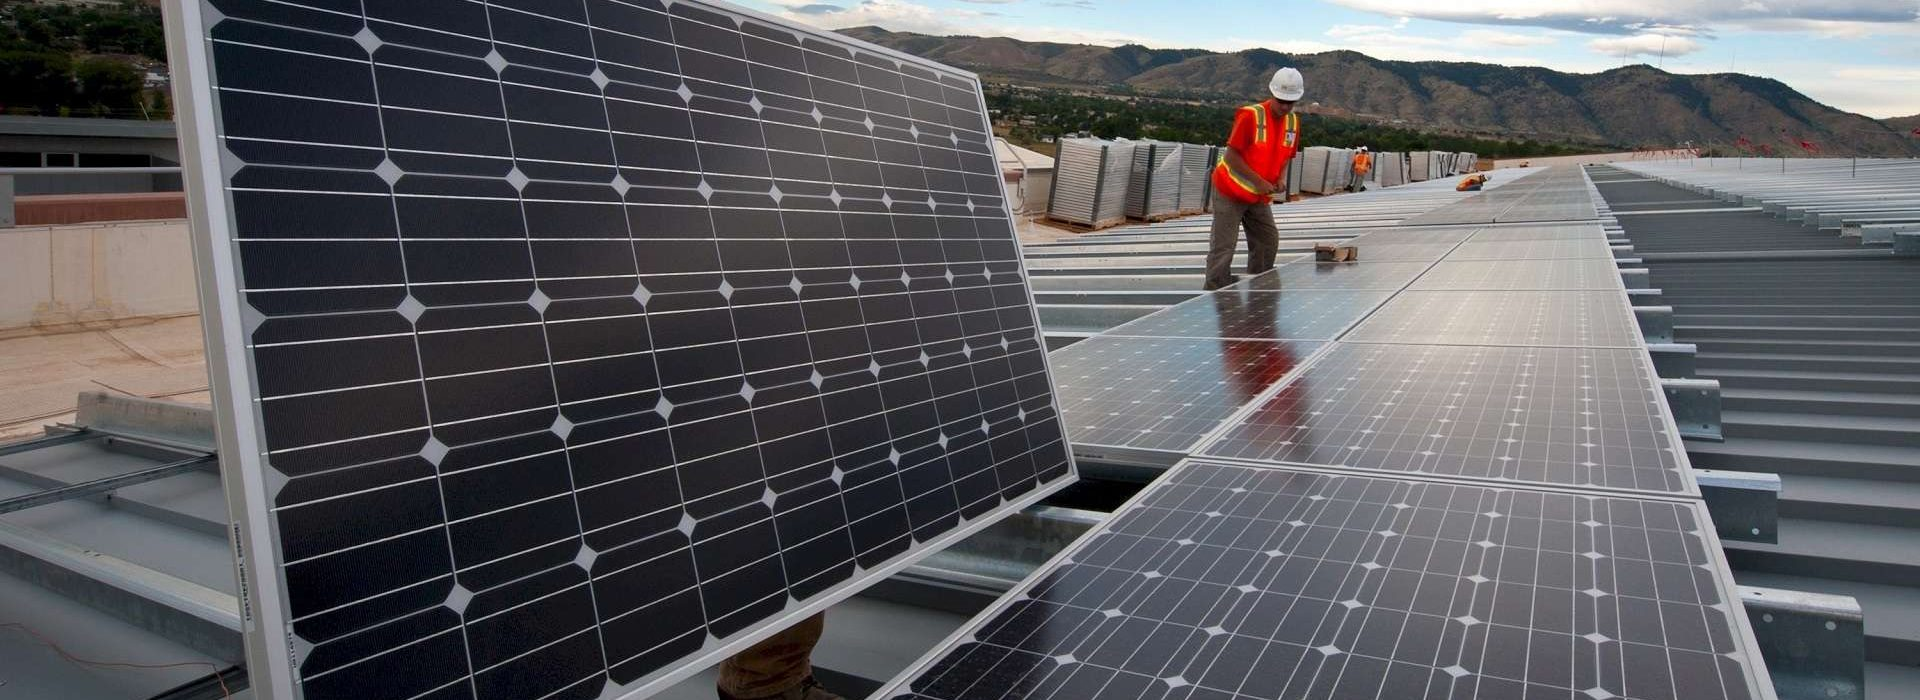 Two men fitting solar panels on a large roof as part of sustainable energy